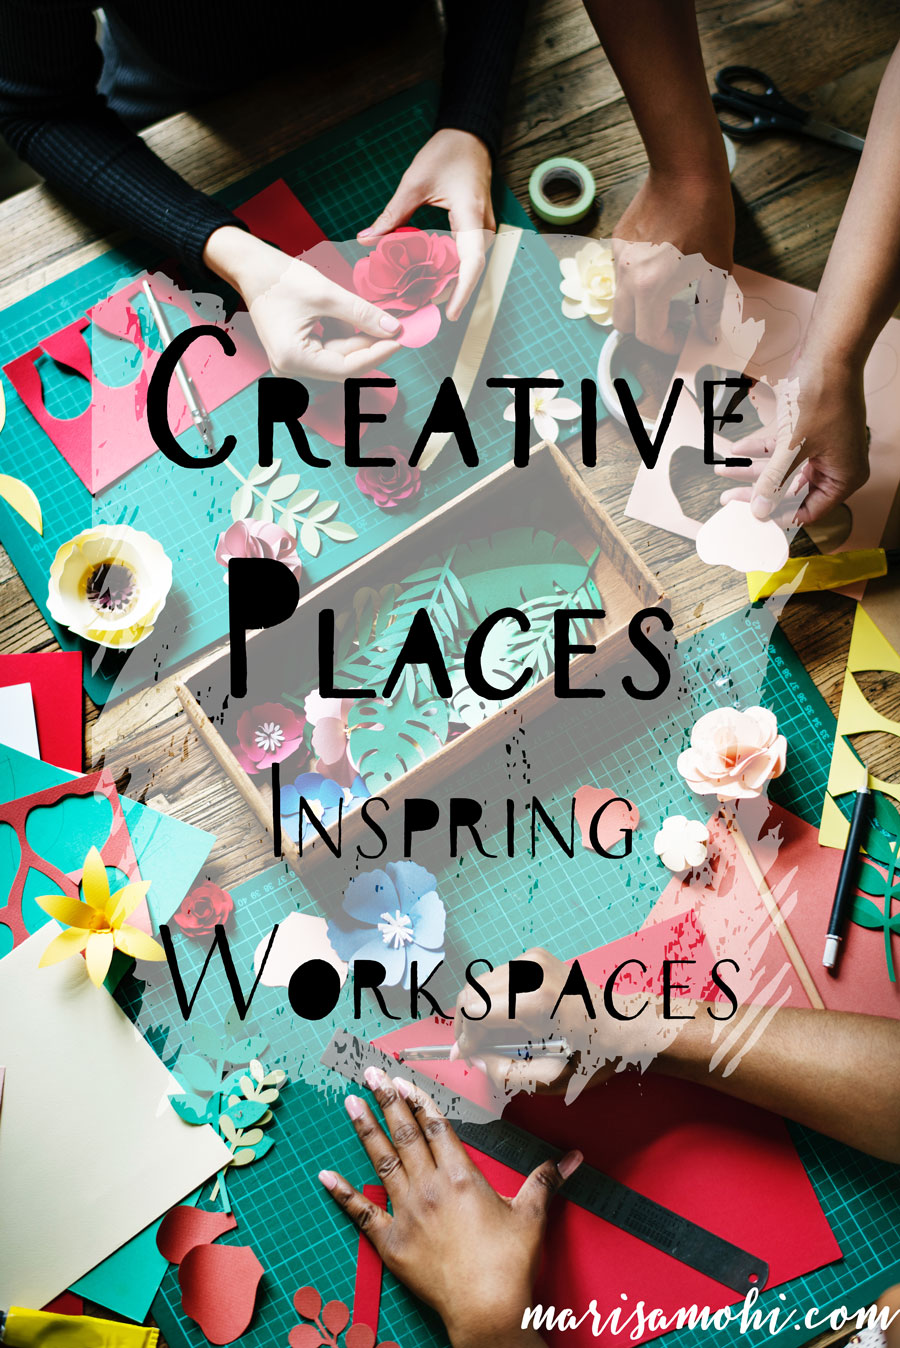 Creative Places: Inspiring Workspaces